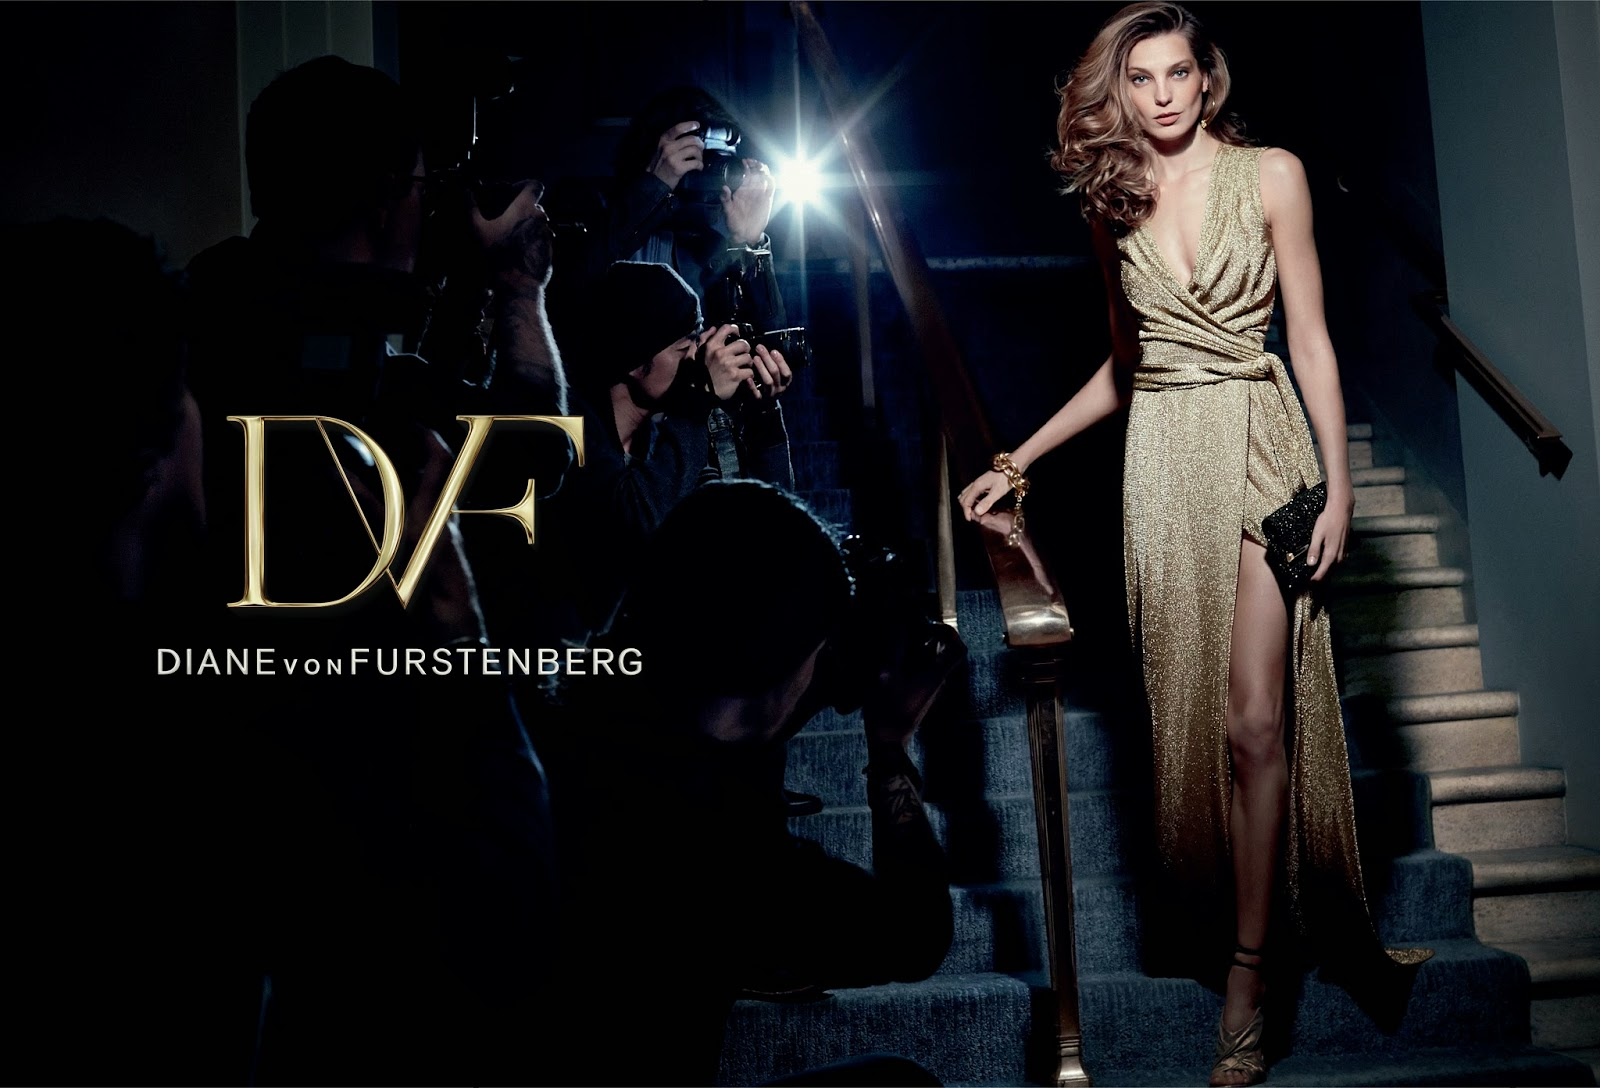 Diane von Furstenberg's Fall 2014 Ad Campaign Has Landed!